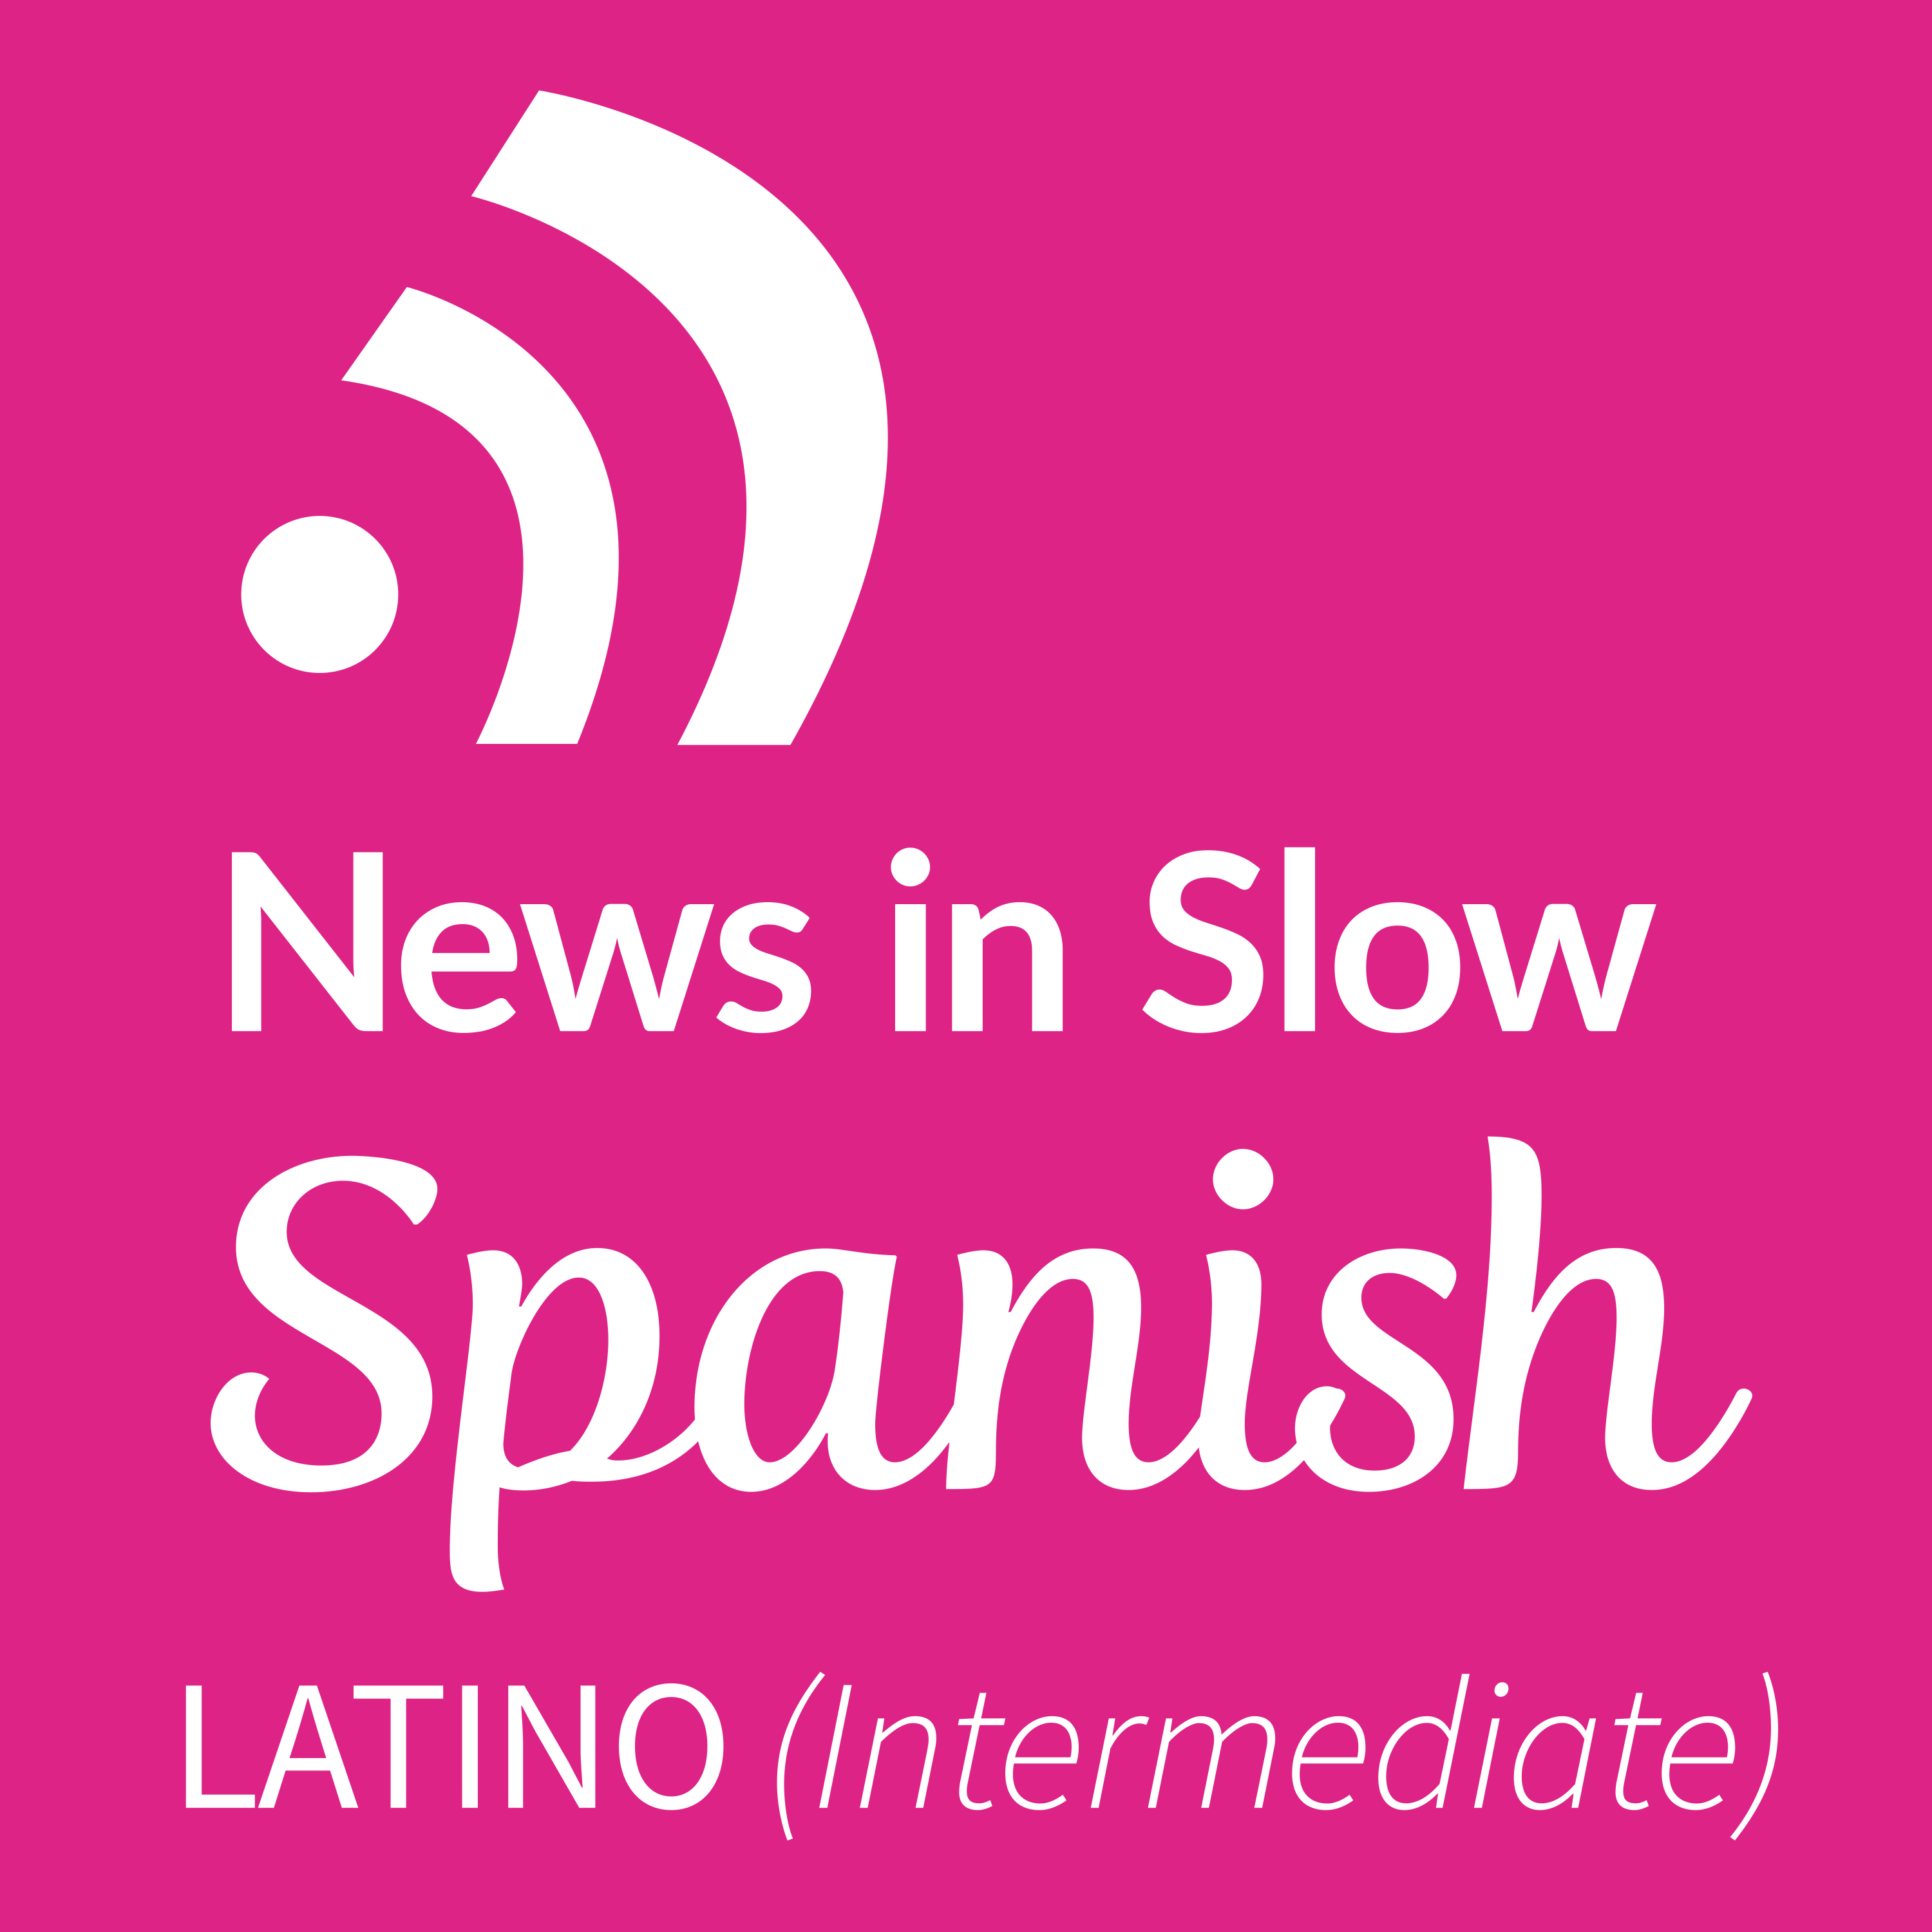 News in Slow Spanish Latino - # 186 - Learn Spanish through current events